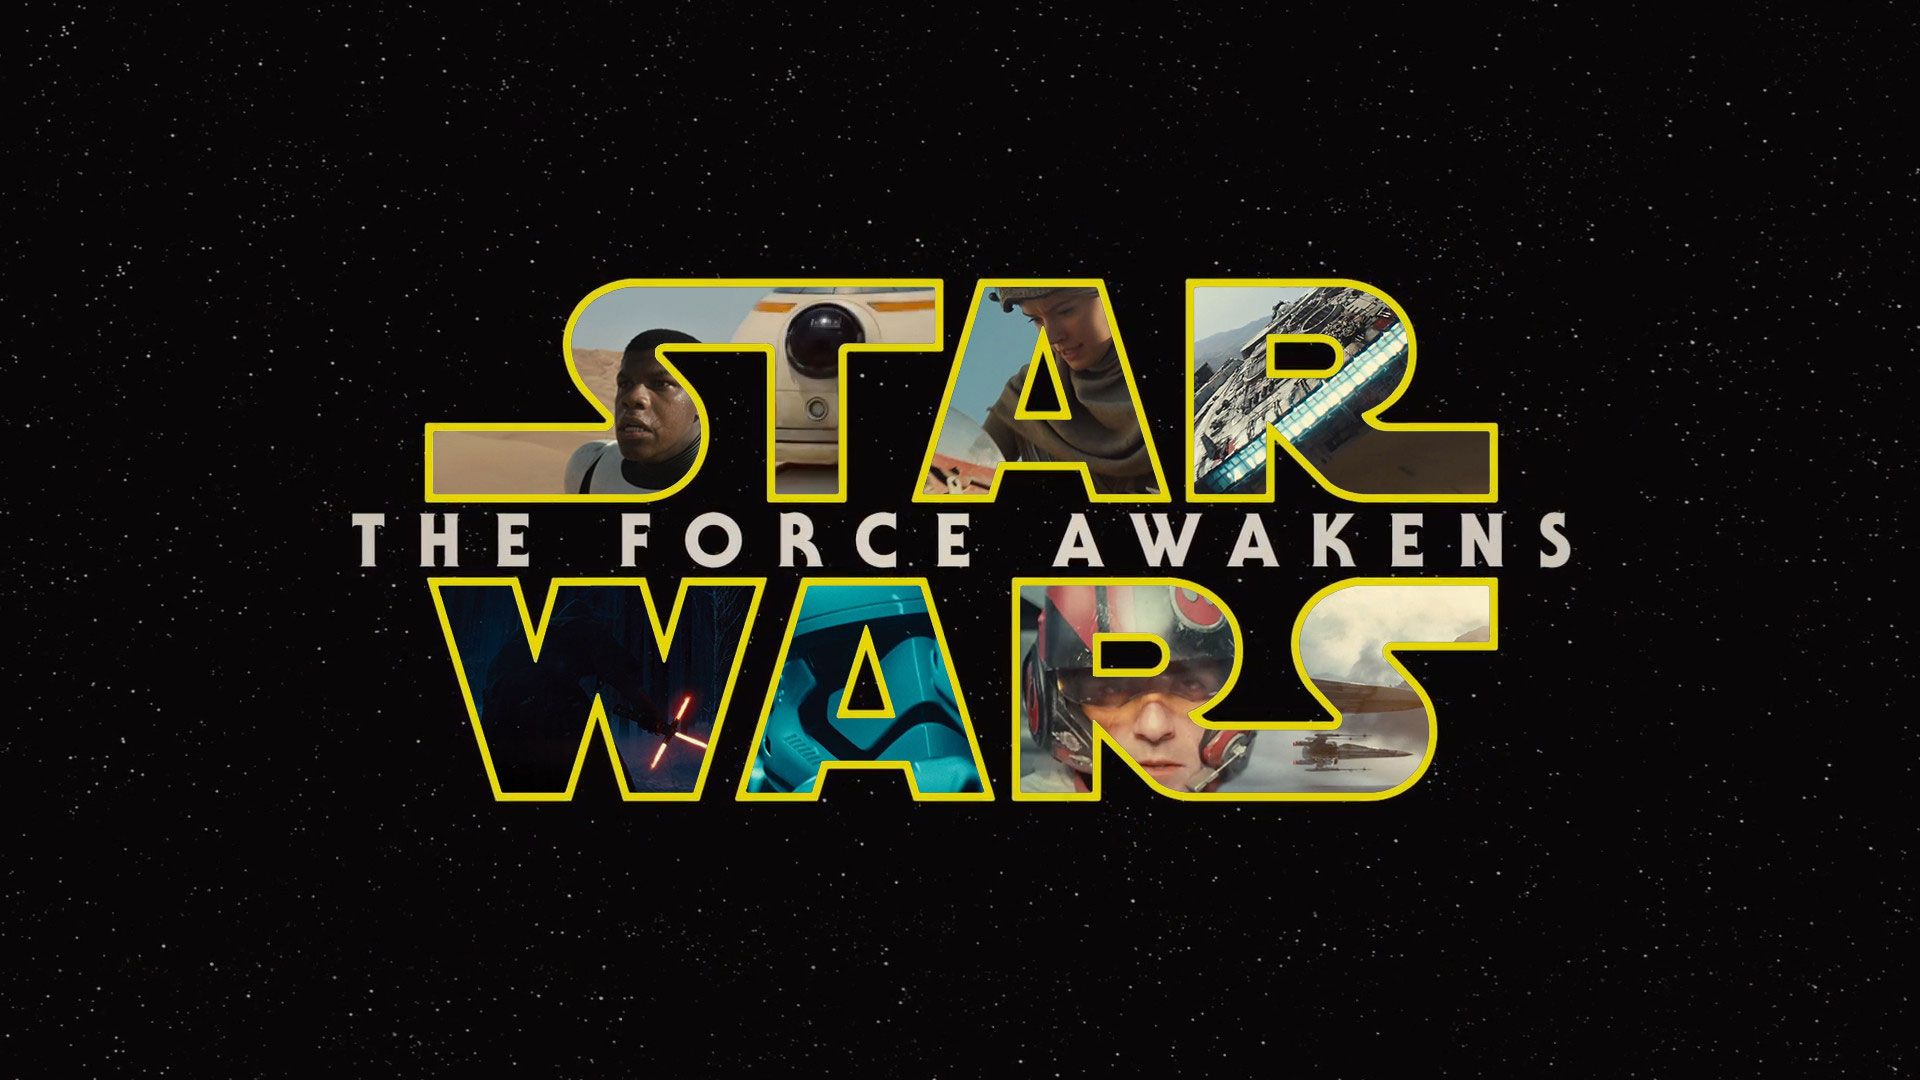 Star Wars The Force Awakens Wallpaper: Star Wars: The Force Awakens Wallpaper And Lego Trailer